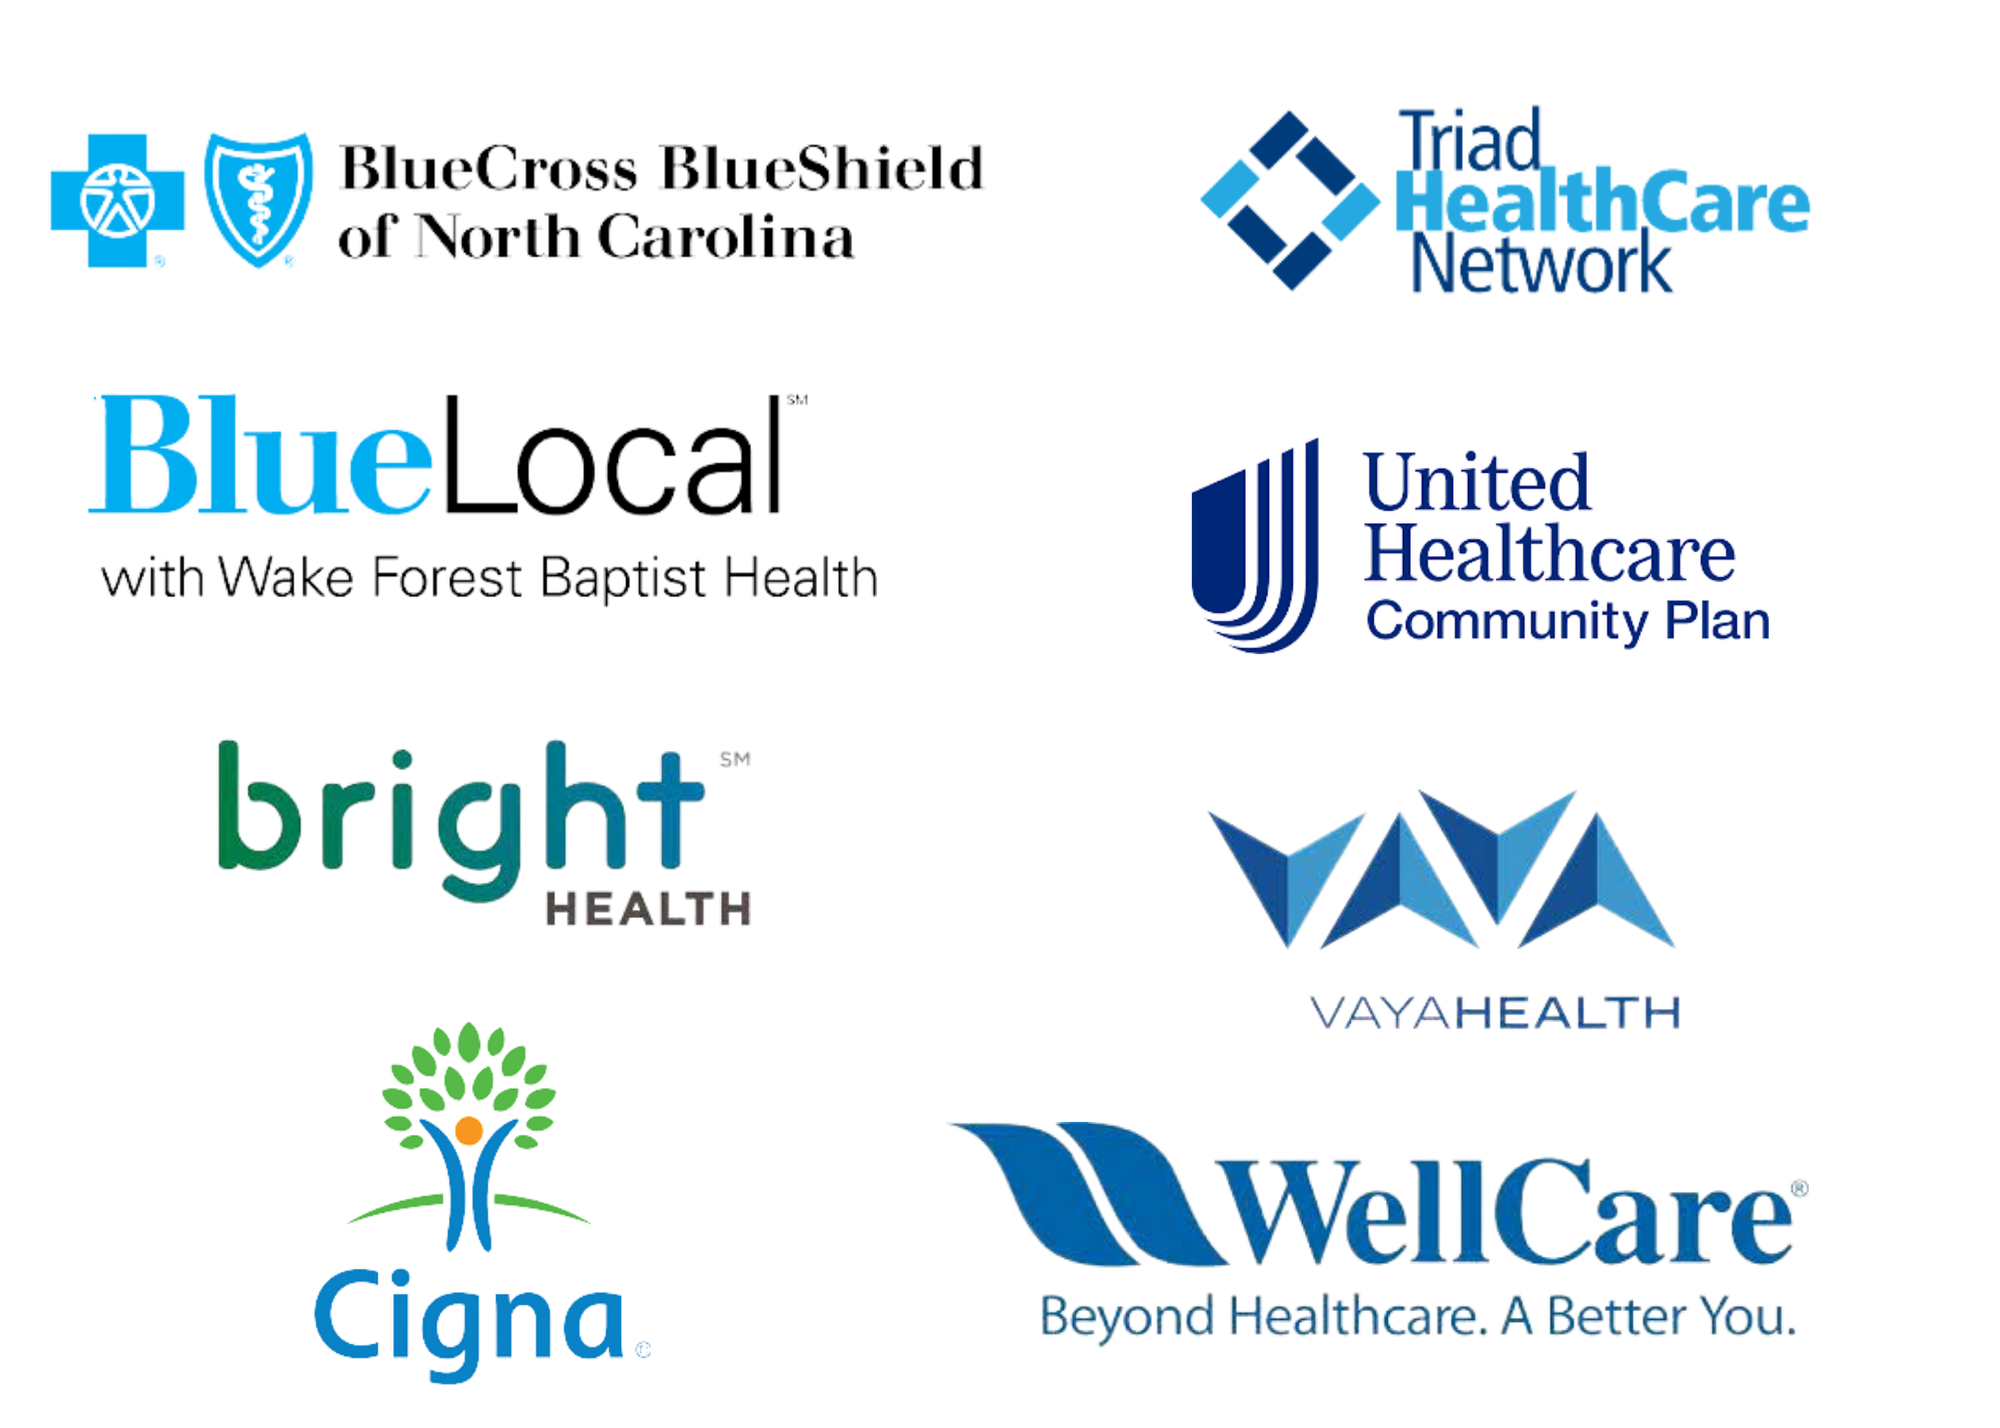 BlueCross BlueShield of North Carolina, Triad Healthcare Network, BlueLocal with Wake Forest Baptist Health, United Healthcare, Cigna and other insurance logos